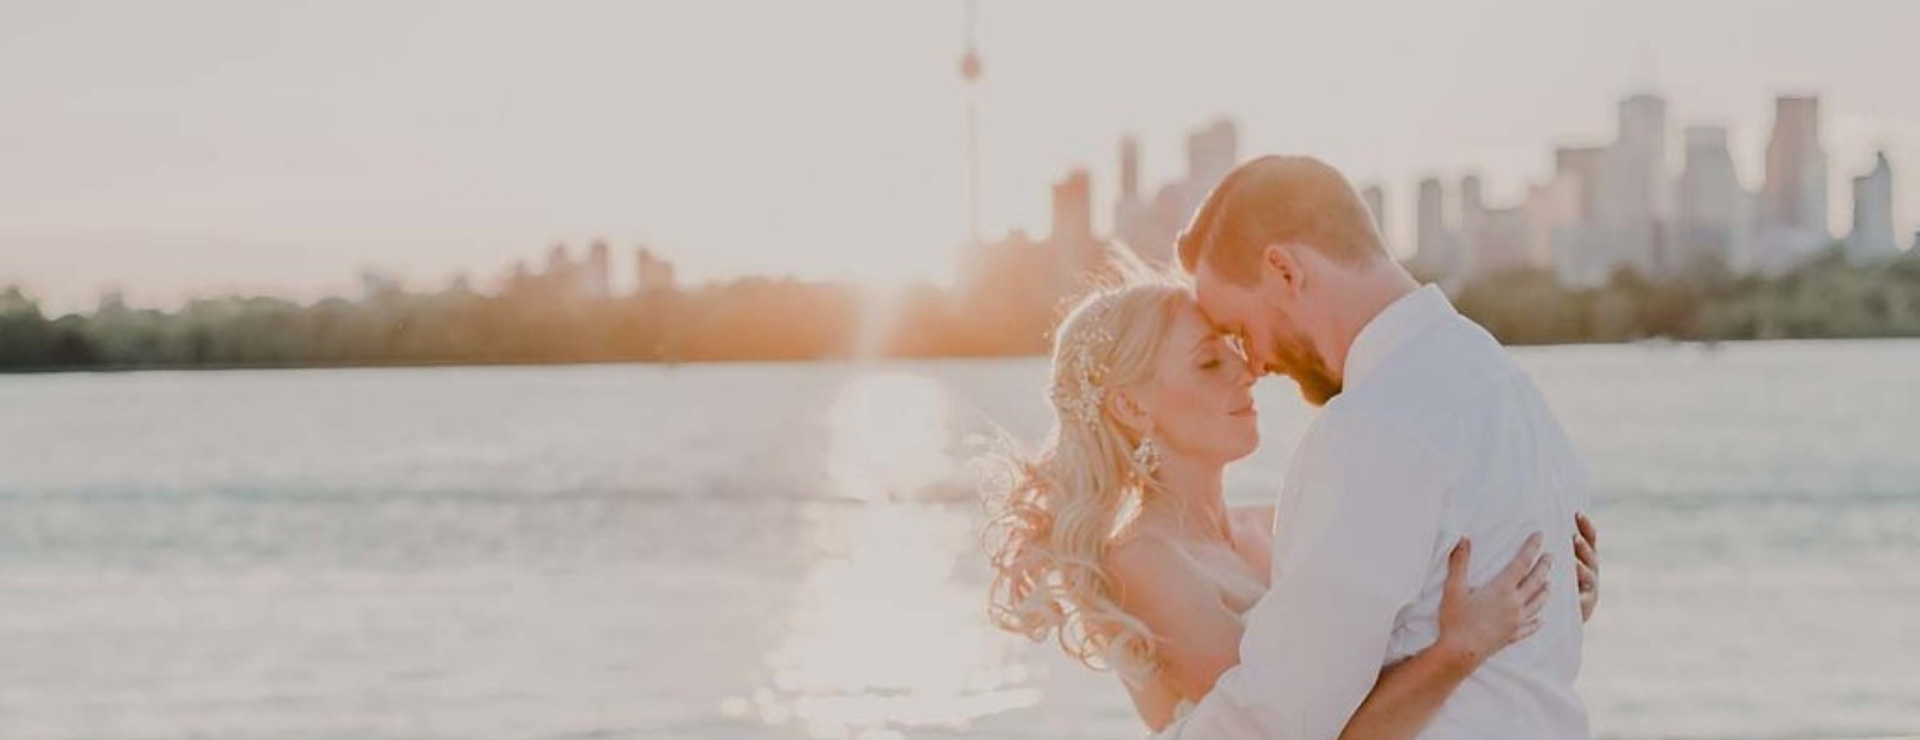 Newlyweds foreheads together water and Toronto in background